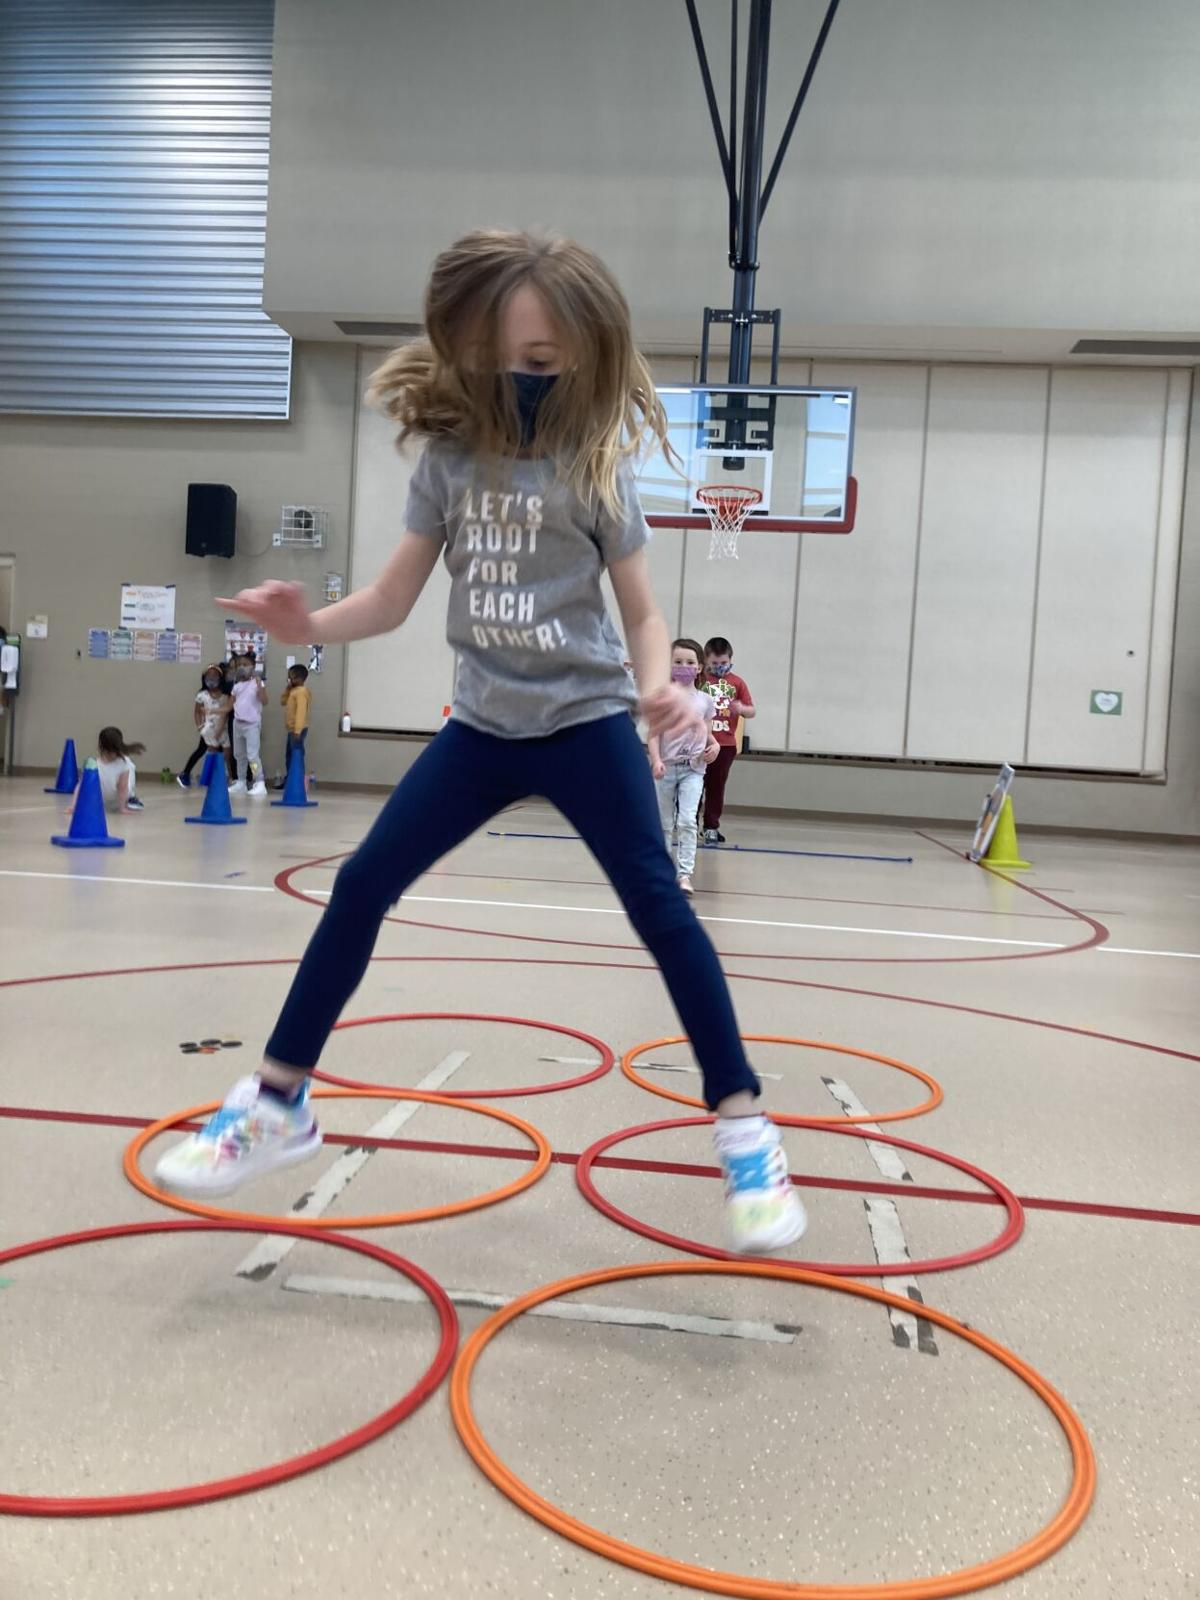 Obstacle course with heart gets students' pulses pumping